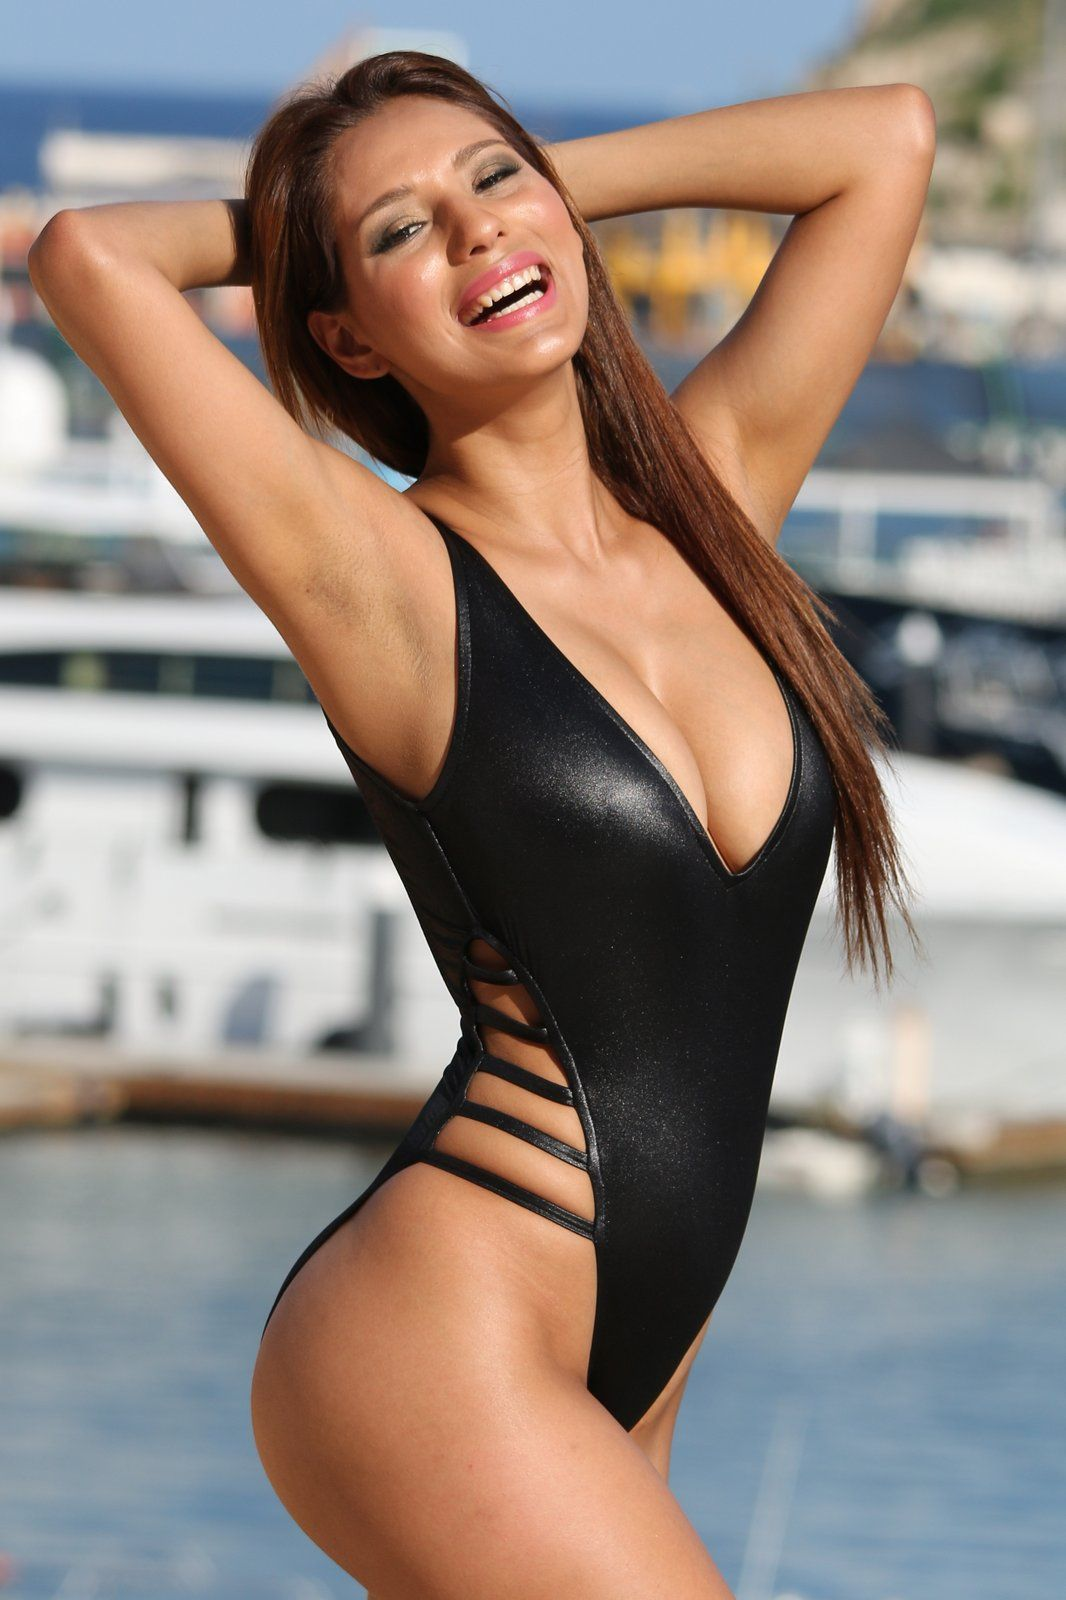 b16ee5121d2 #Strappy Slick #HighCut #OnePiece Black Cire fabric is so hot in this super  sexy and #FashionSwimsuit www.ujena.com